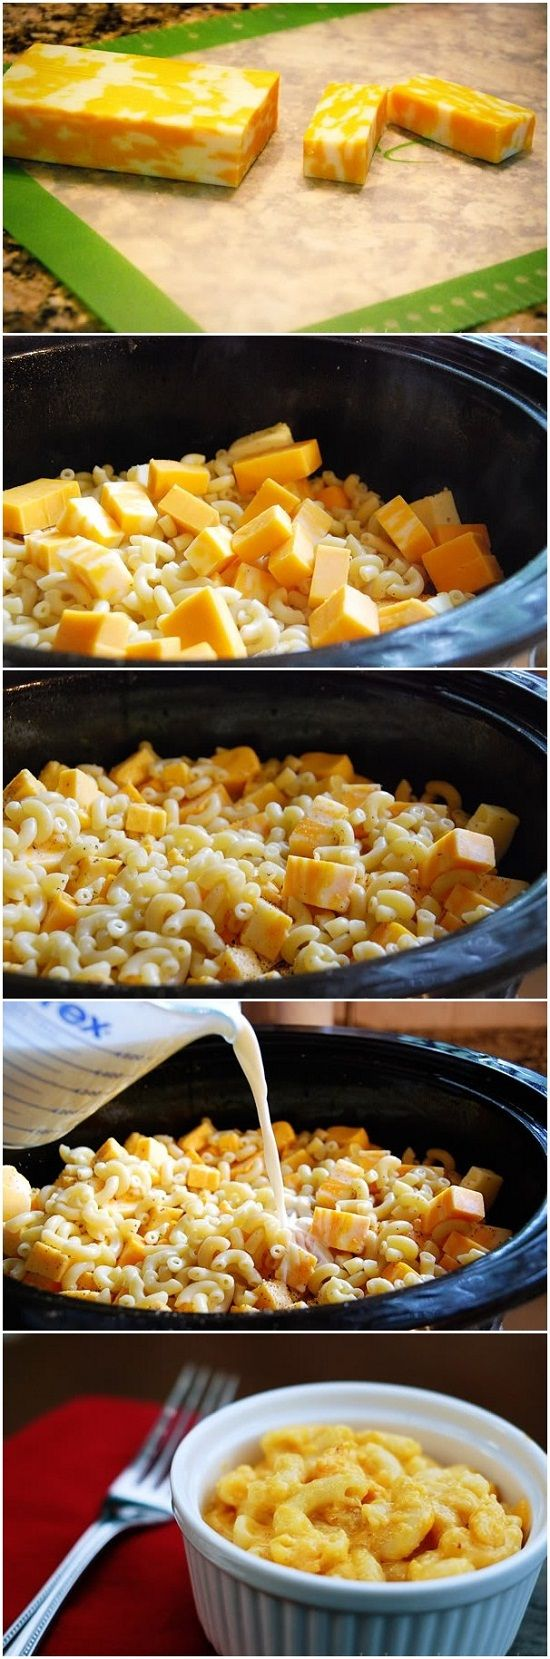 Crockpot Mac & Cheese .. i wonder if this will actually taste good.. if you put cooked mac in the crockpot and let it cook on low for 4 hrs w/ cheese cubes and milk, i would think the noodles would become overcooked.. but i am going to try it because my kids love mac n cheese!